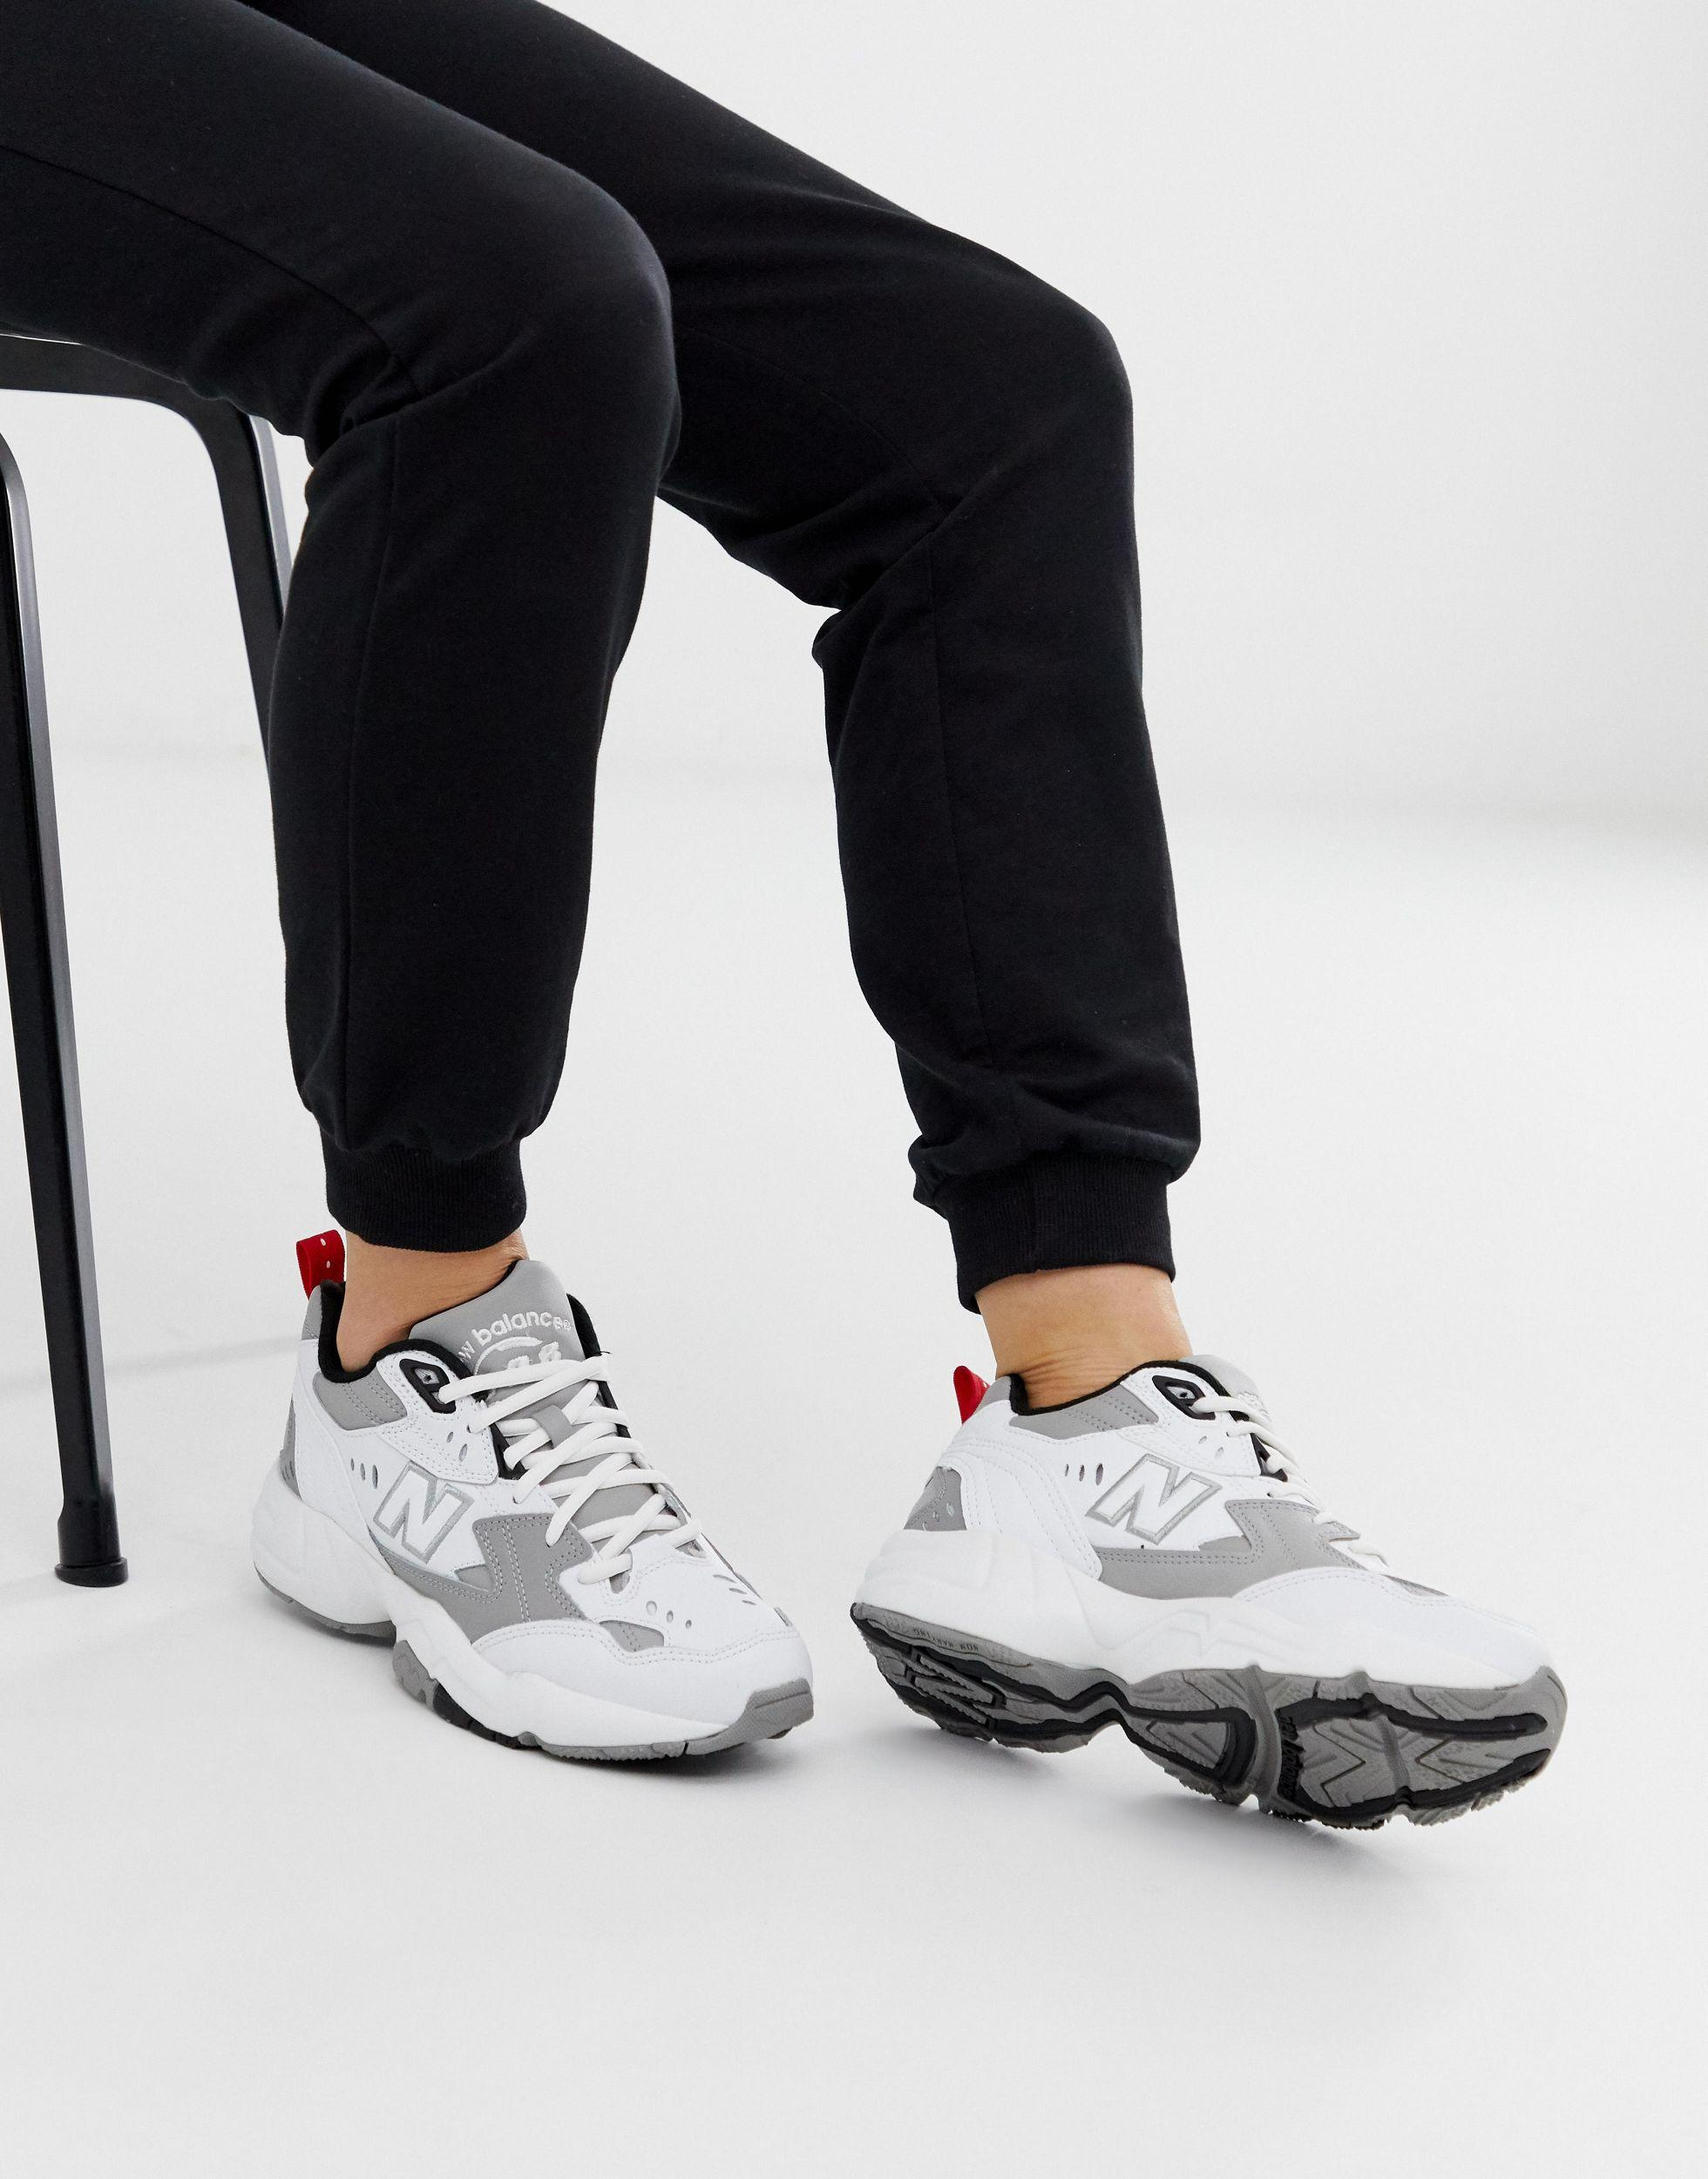 New Balance Leather 608 White And Gray